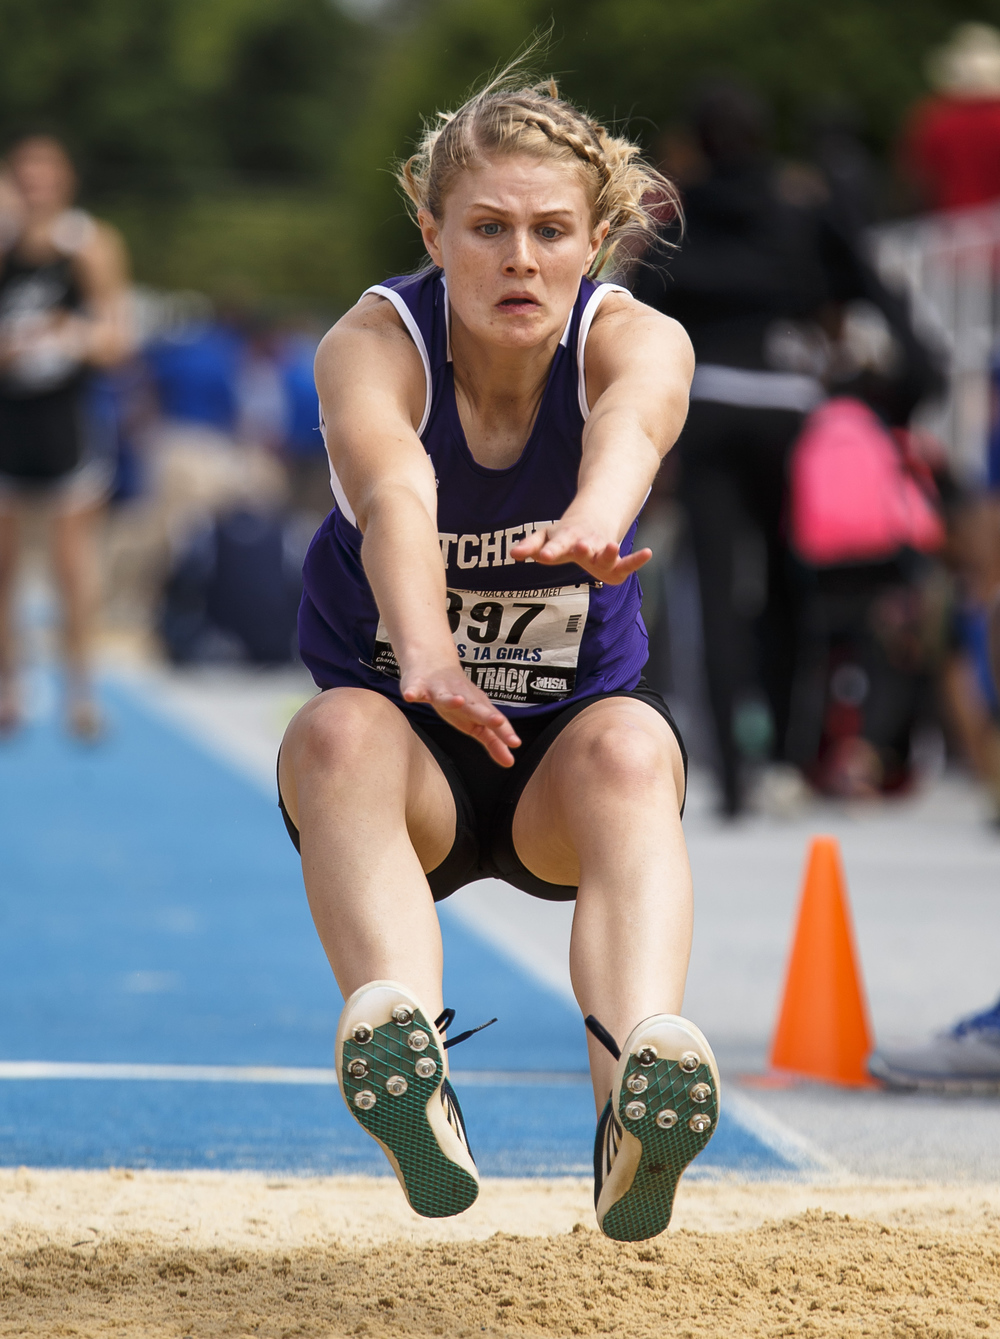 Litchfield's Bryn Guthrie hits the sand while competing in the Class 1A Long Jump during the 2016 IHSA Girls State Track and Field Meet at O'Brien Stadium, Saturday, May 21, 2016, in Charleston, Ill. Guthrie finished in second with a jump of 17-05.00. Justin L. Fowler/The State Journal-Register